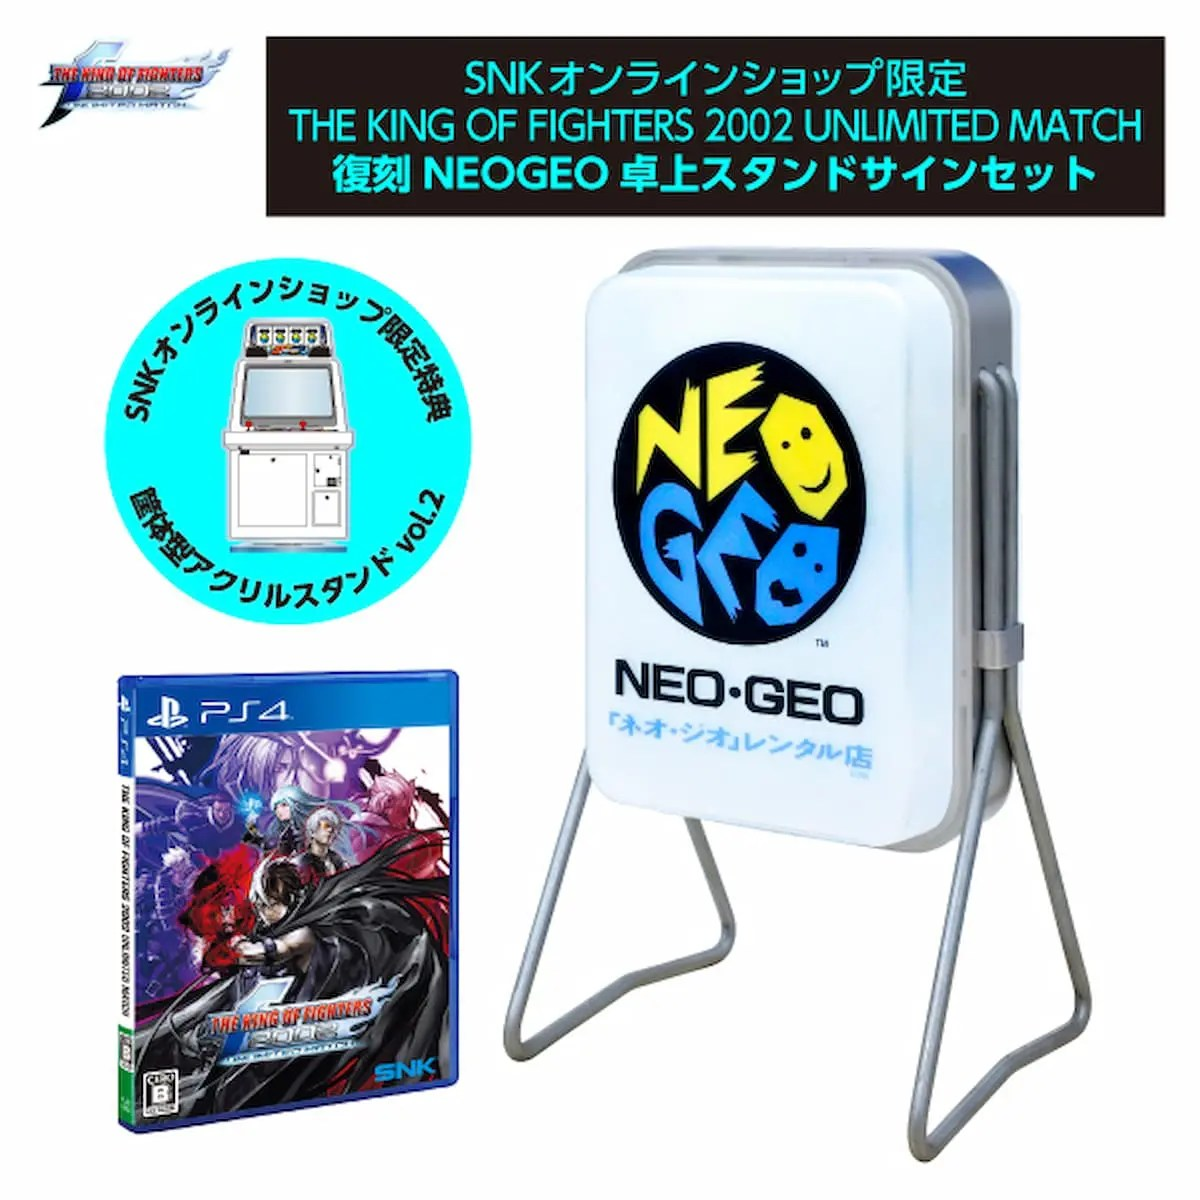 THE KING OF FIGHTERS 2002 UNLIMITED MATCH 復刻NEOGEO卓上スタンドサインセット - PS4